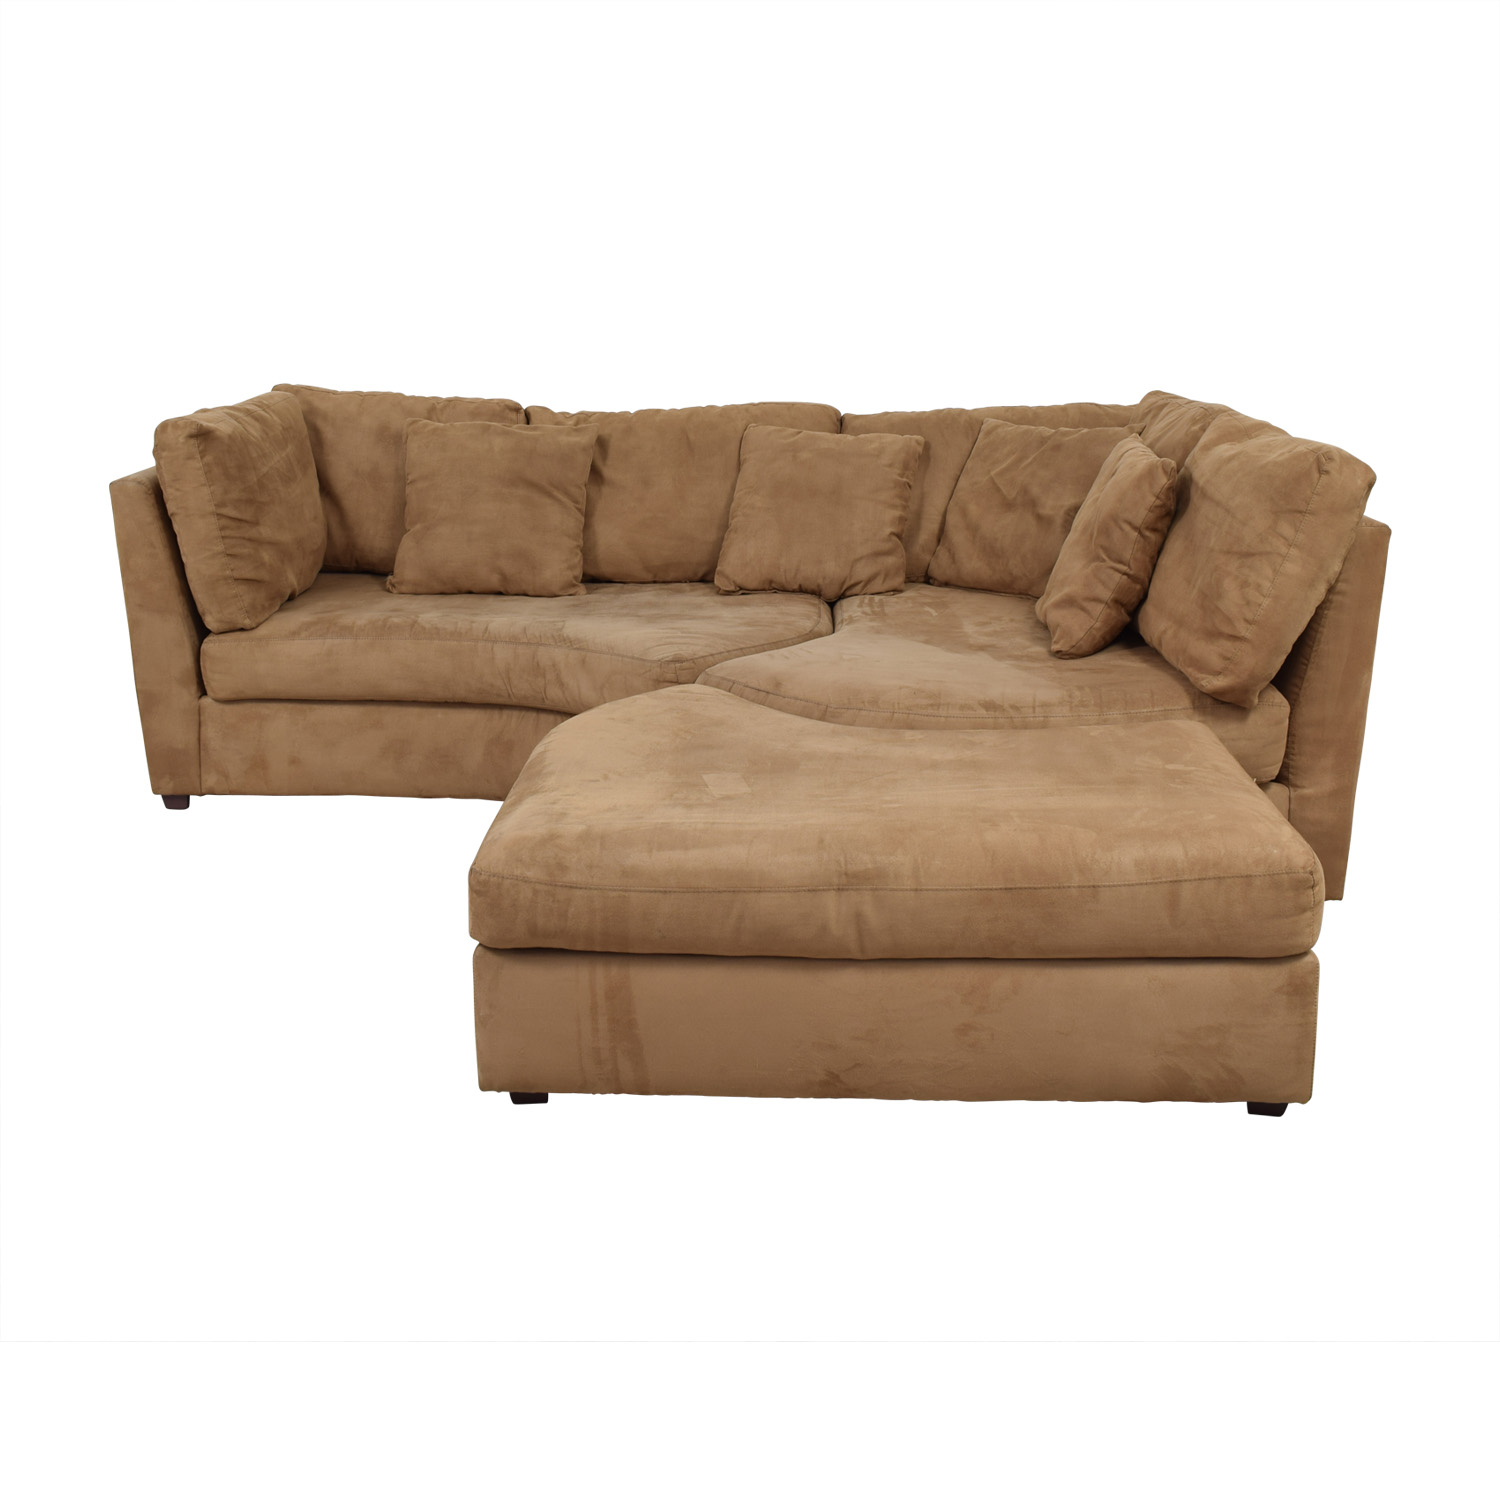 shop Raymour & Flanigan Sectional Sofa with Ottoman Raymour & Flanigan Sofas